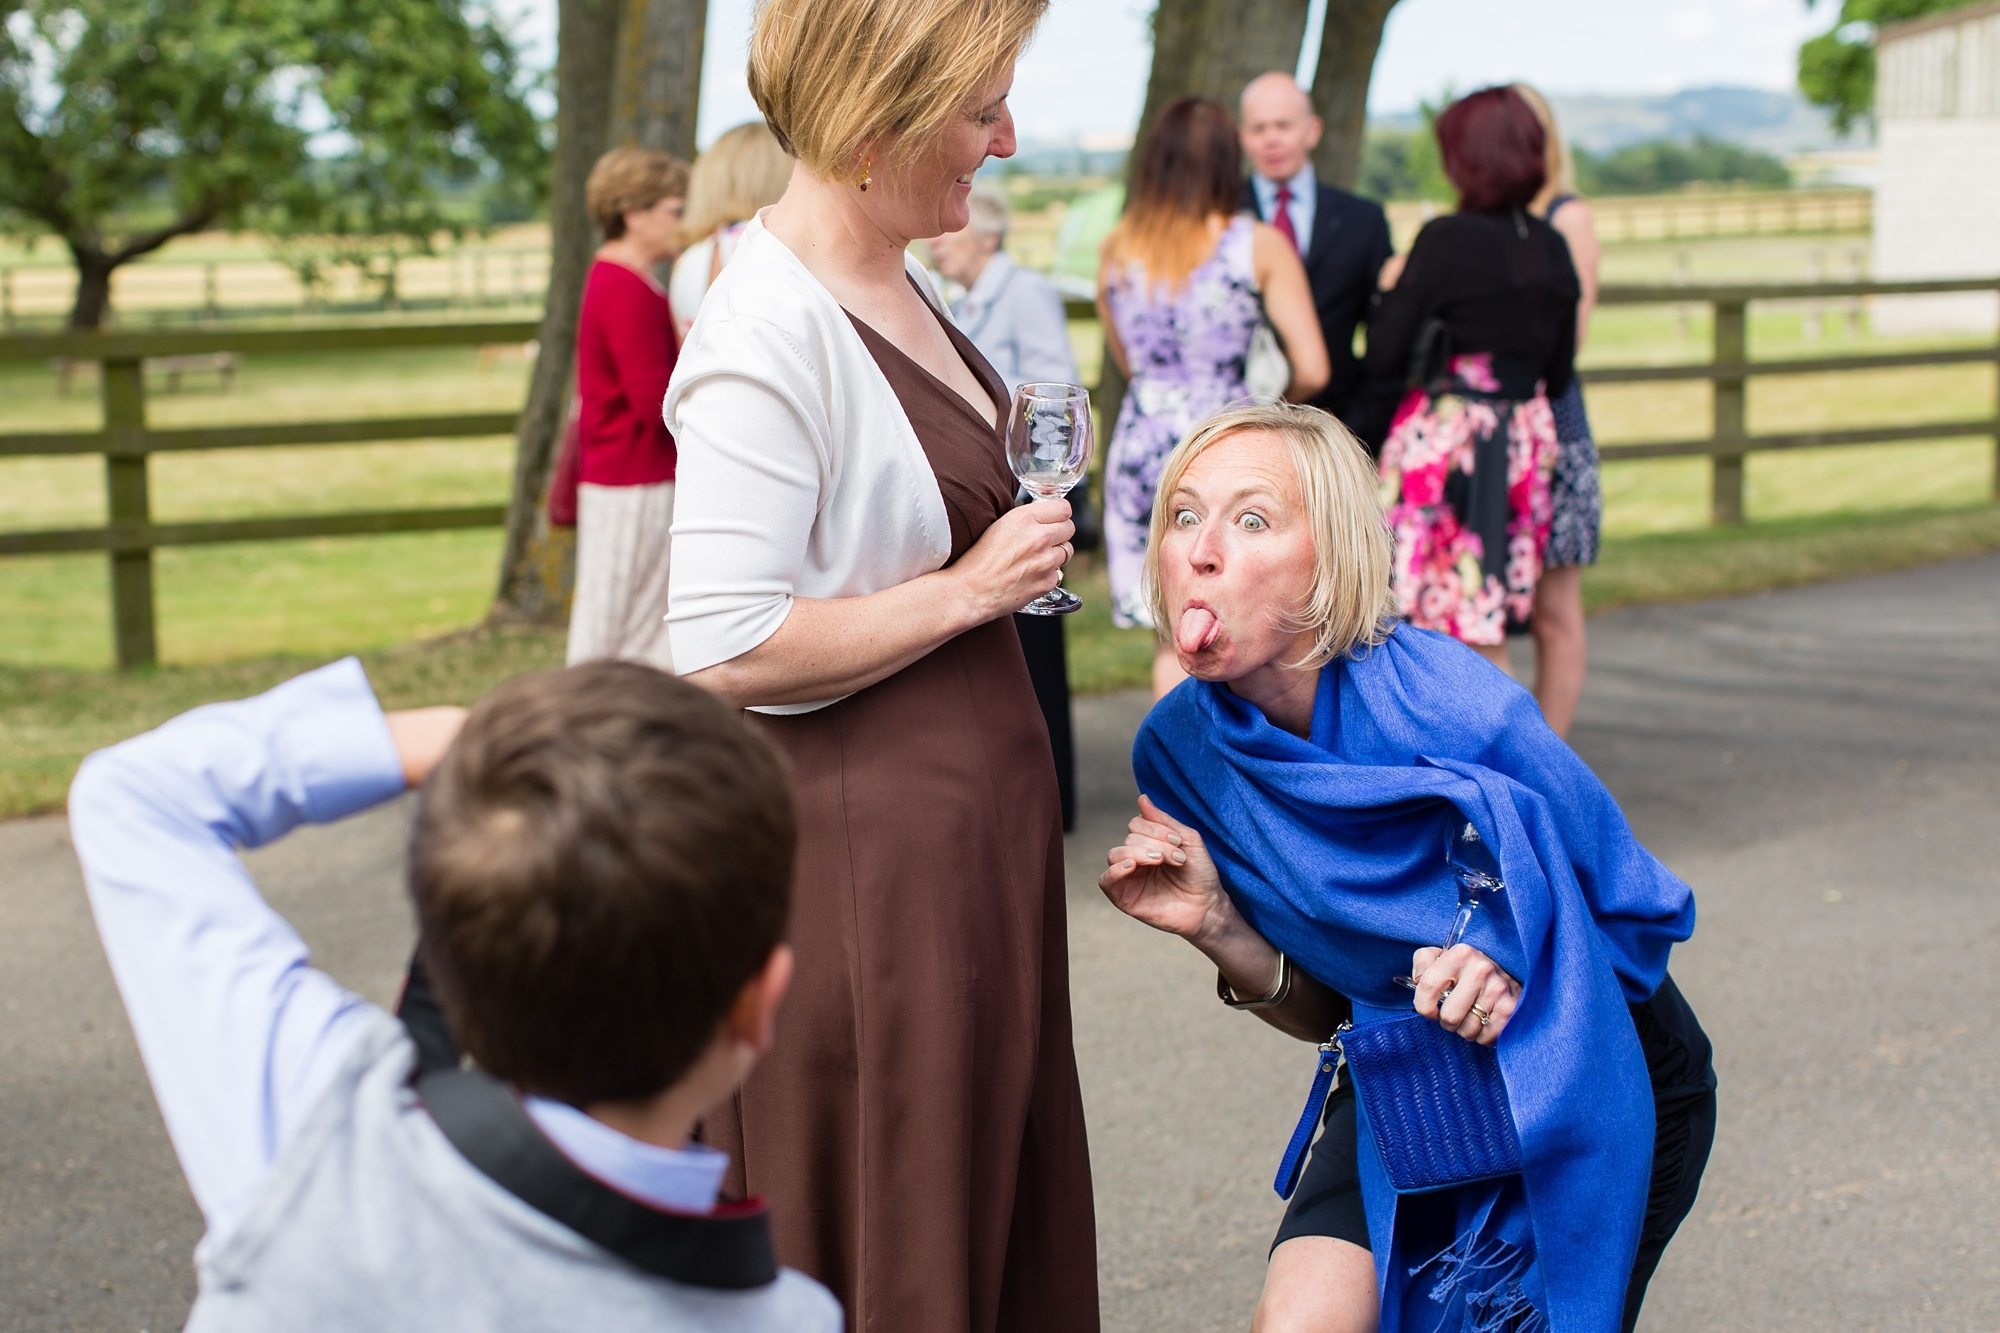 wedding guest pulling silly face and sticking tongue out